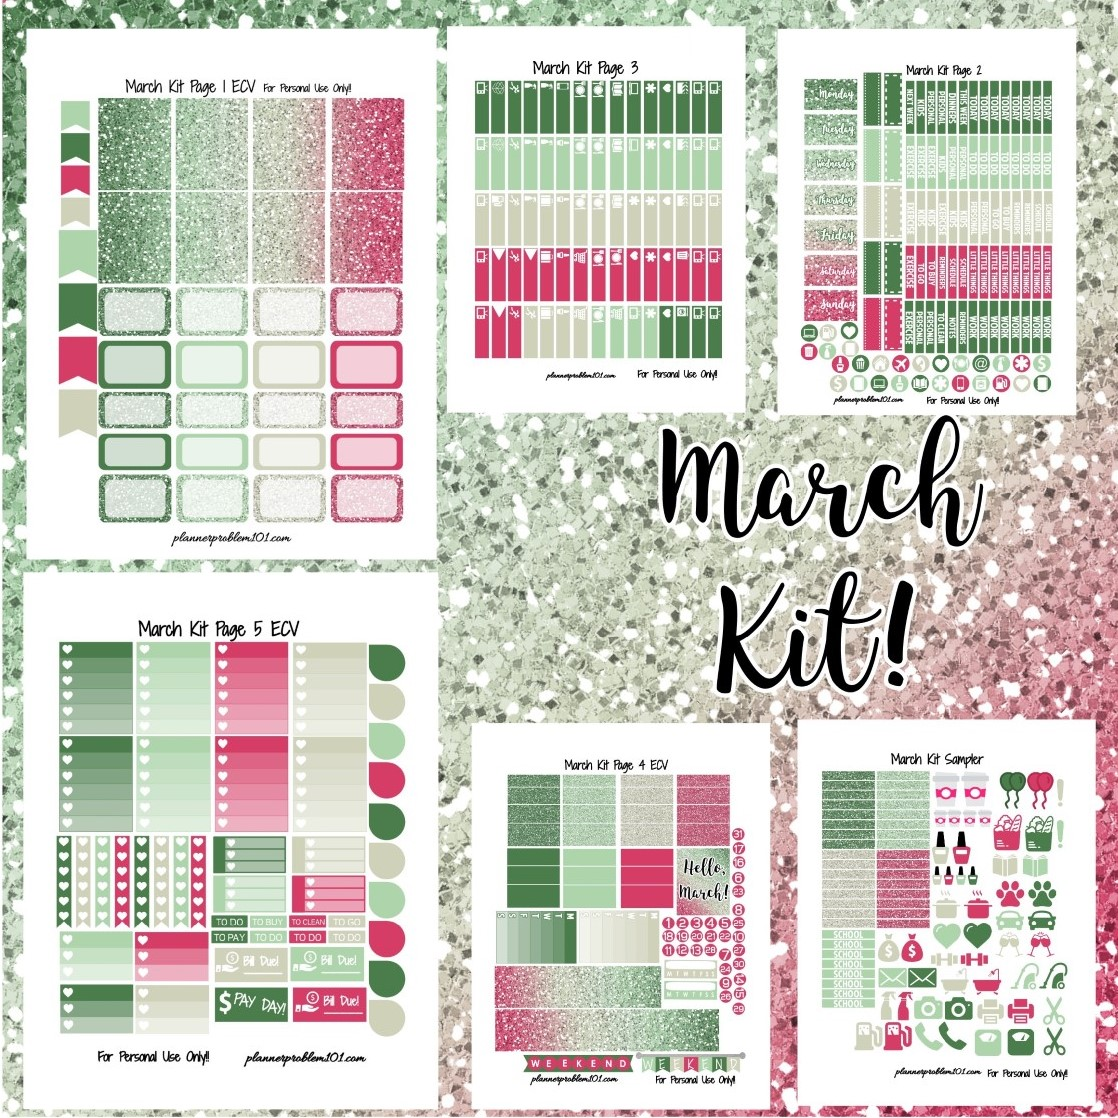 March Glitter Kit! | Free Printable Planner Stickers ...